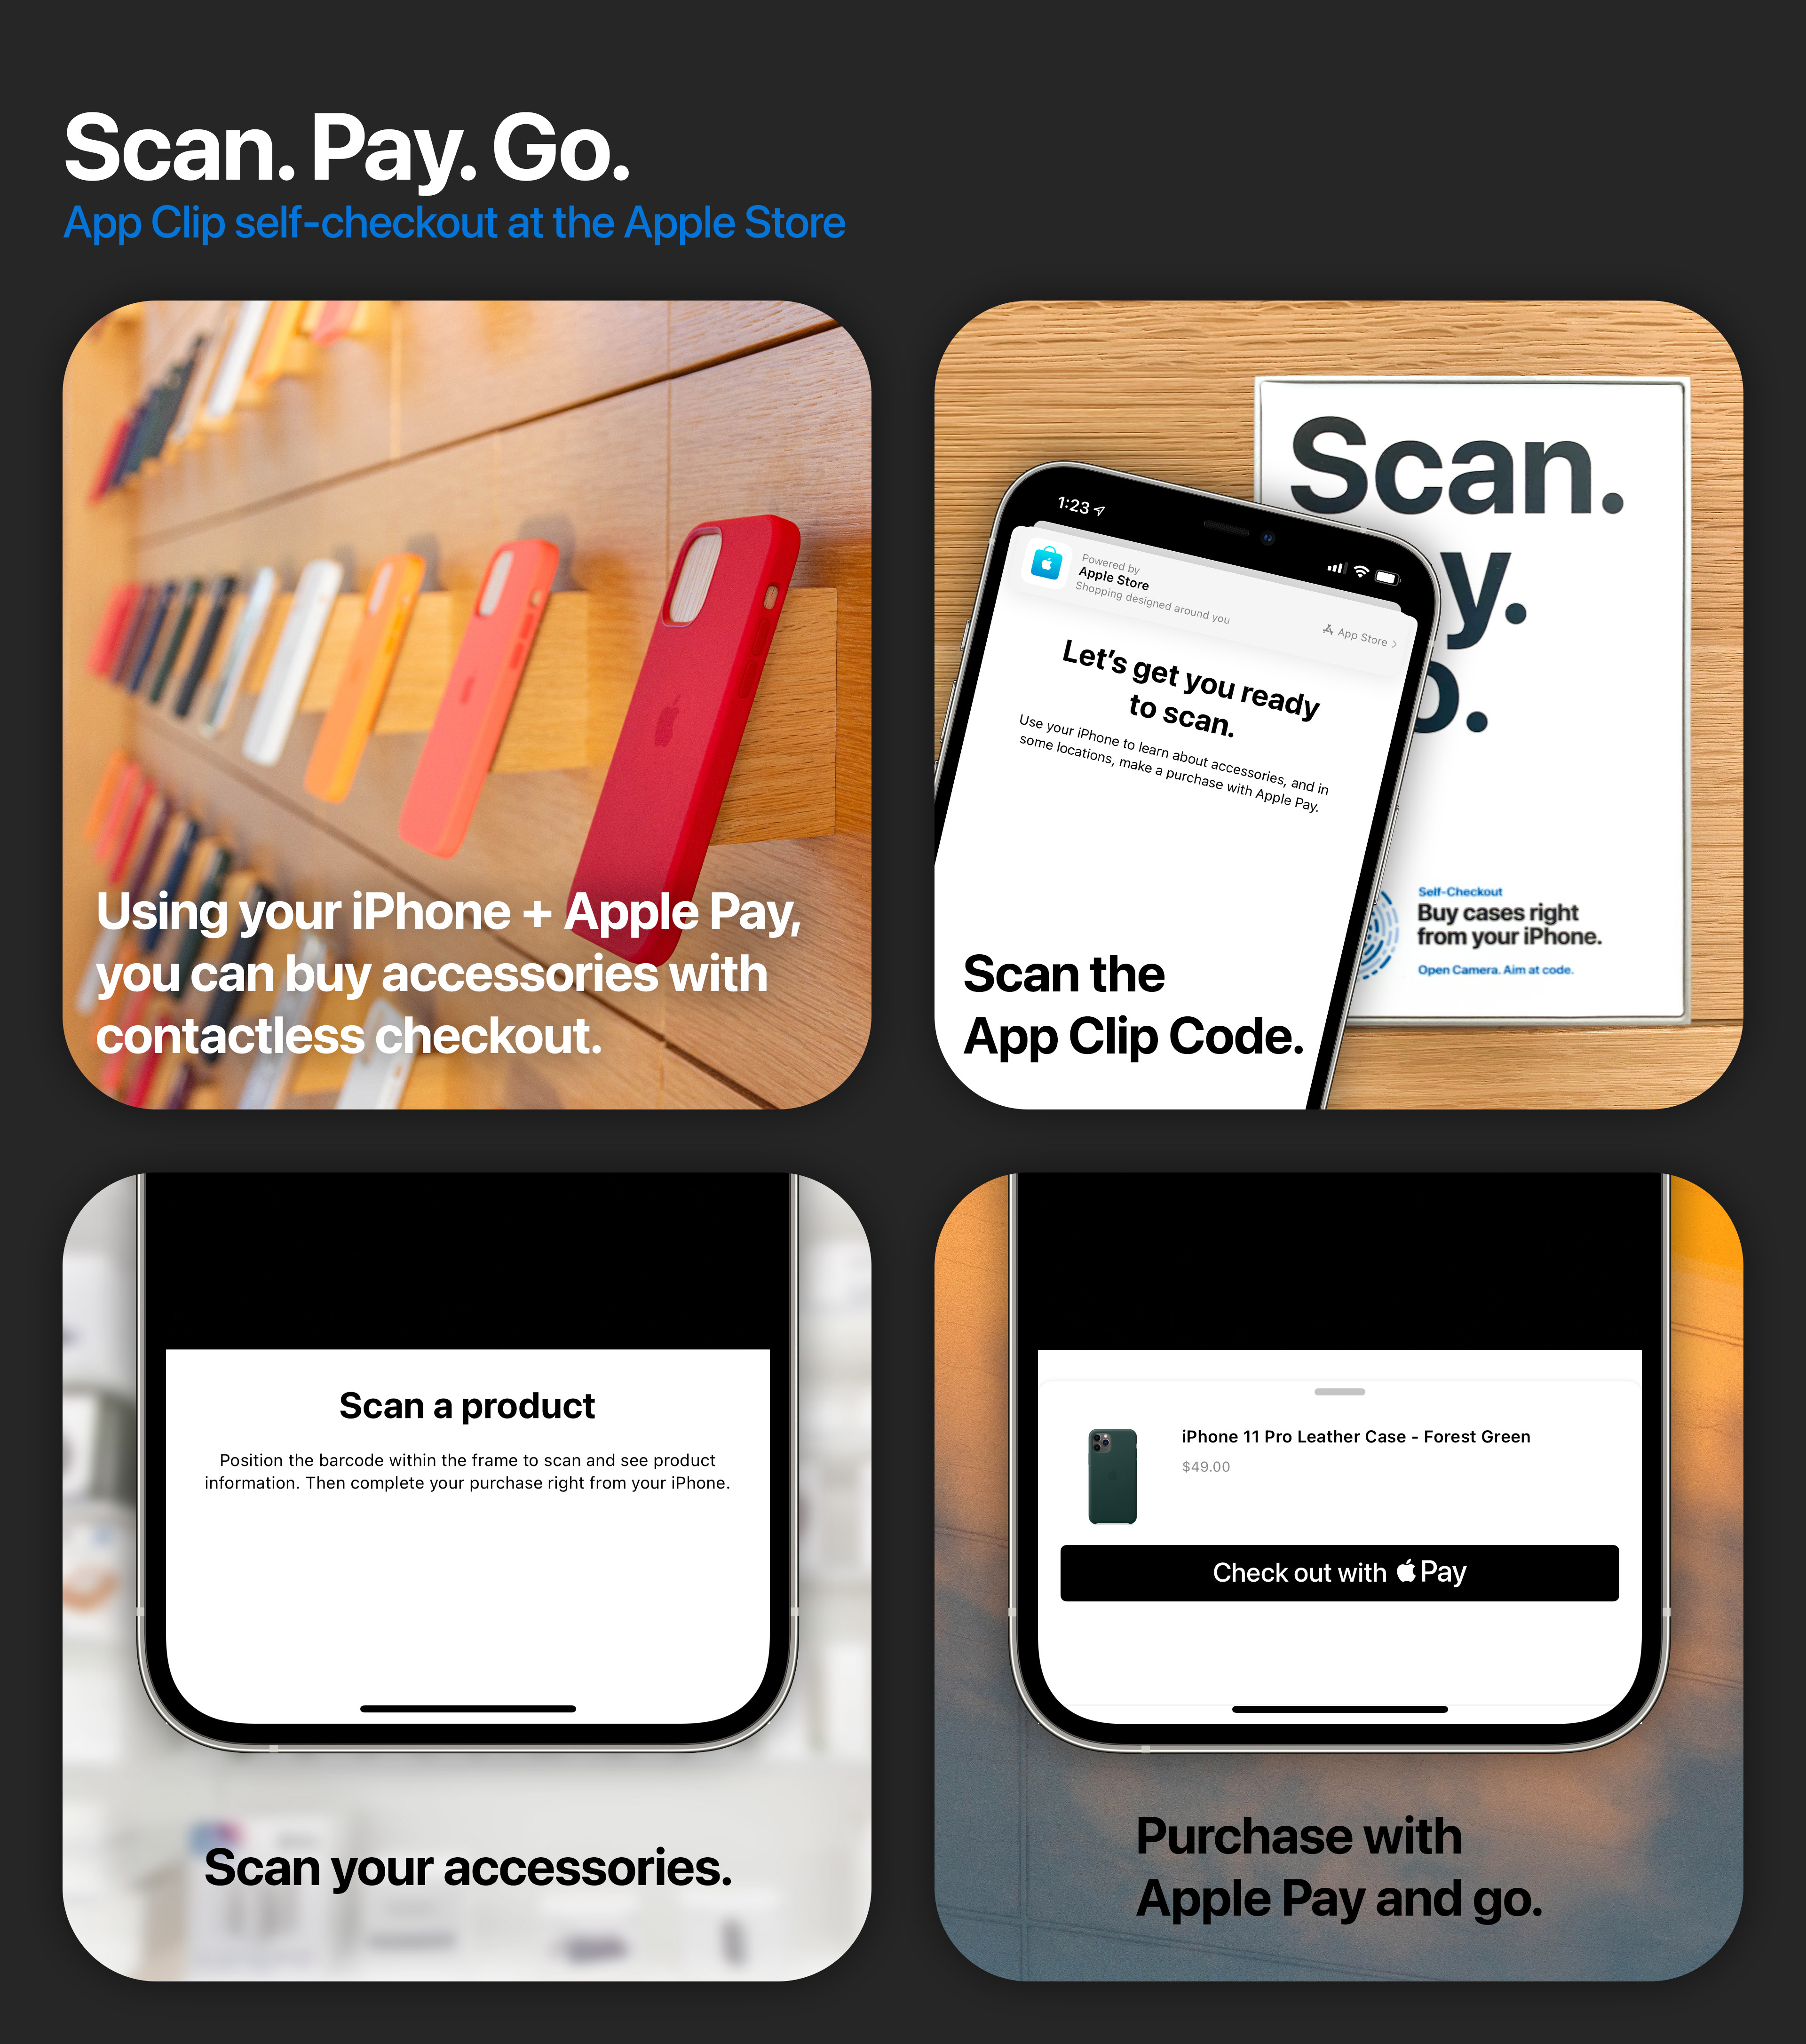 Scan. Pay. Go. App Clip self-checkout at the Apple Store.